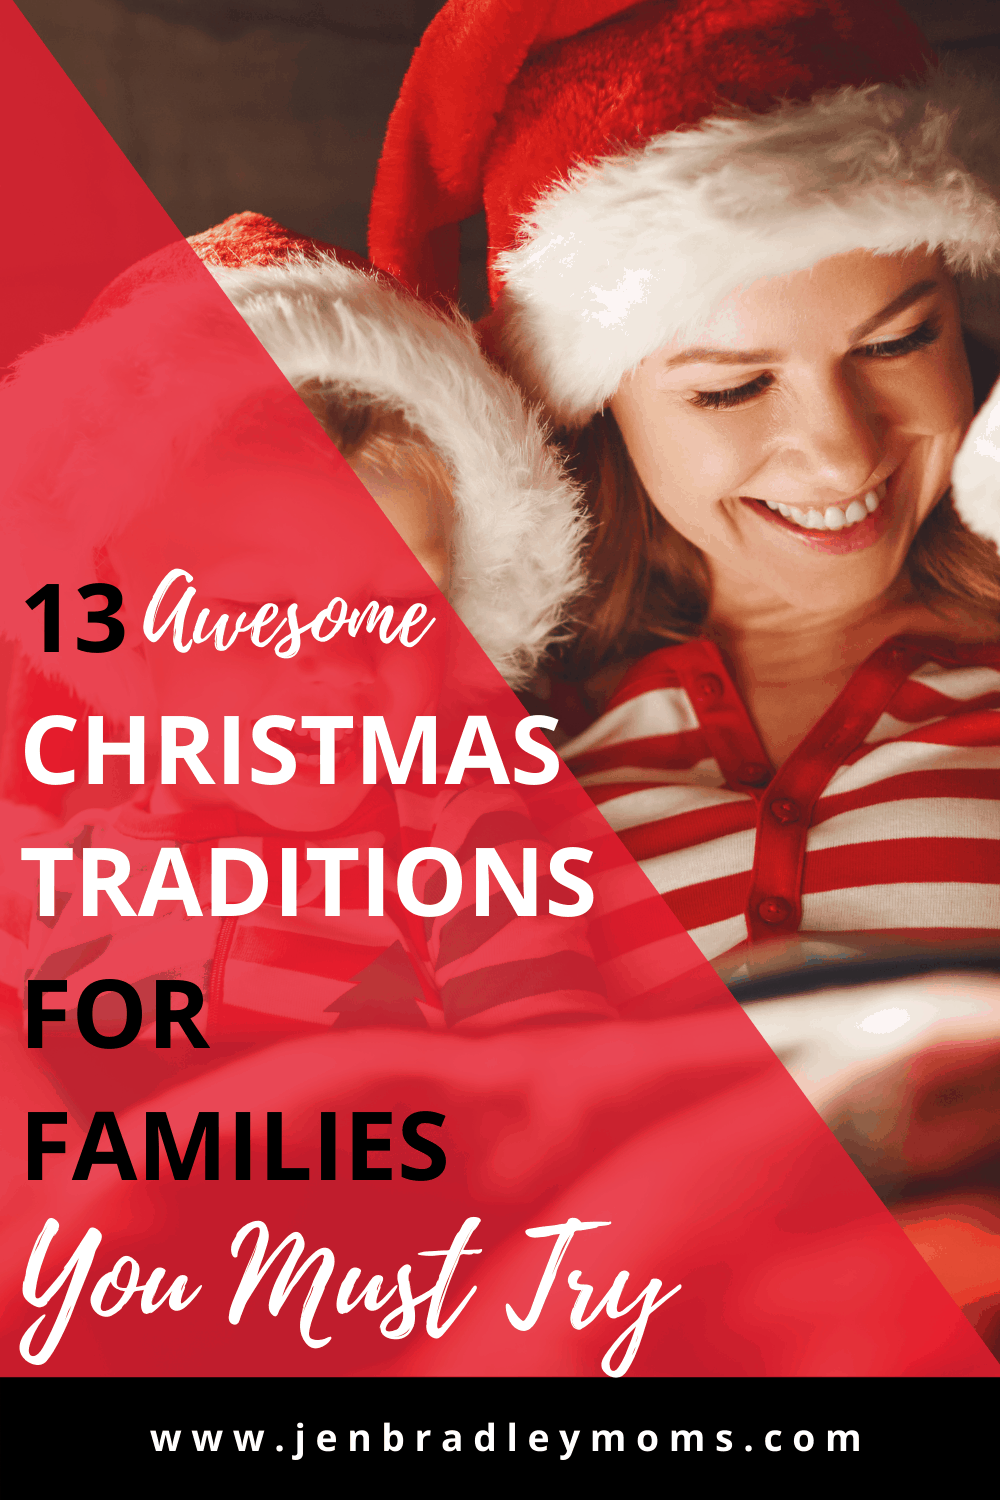 13 Awesome Christmas Traditions for Families You Must Try